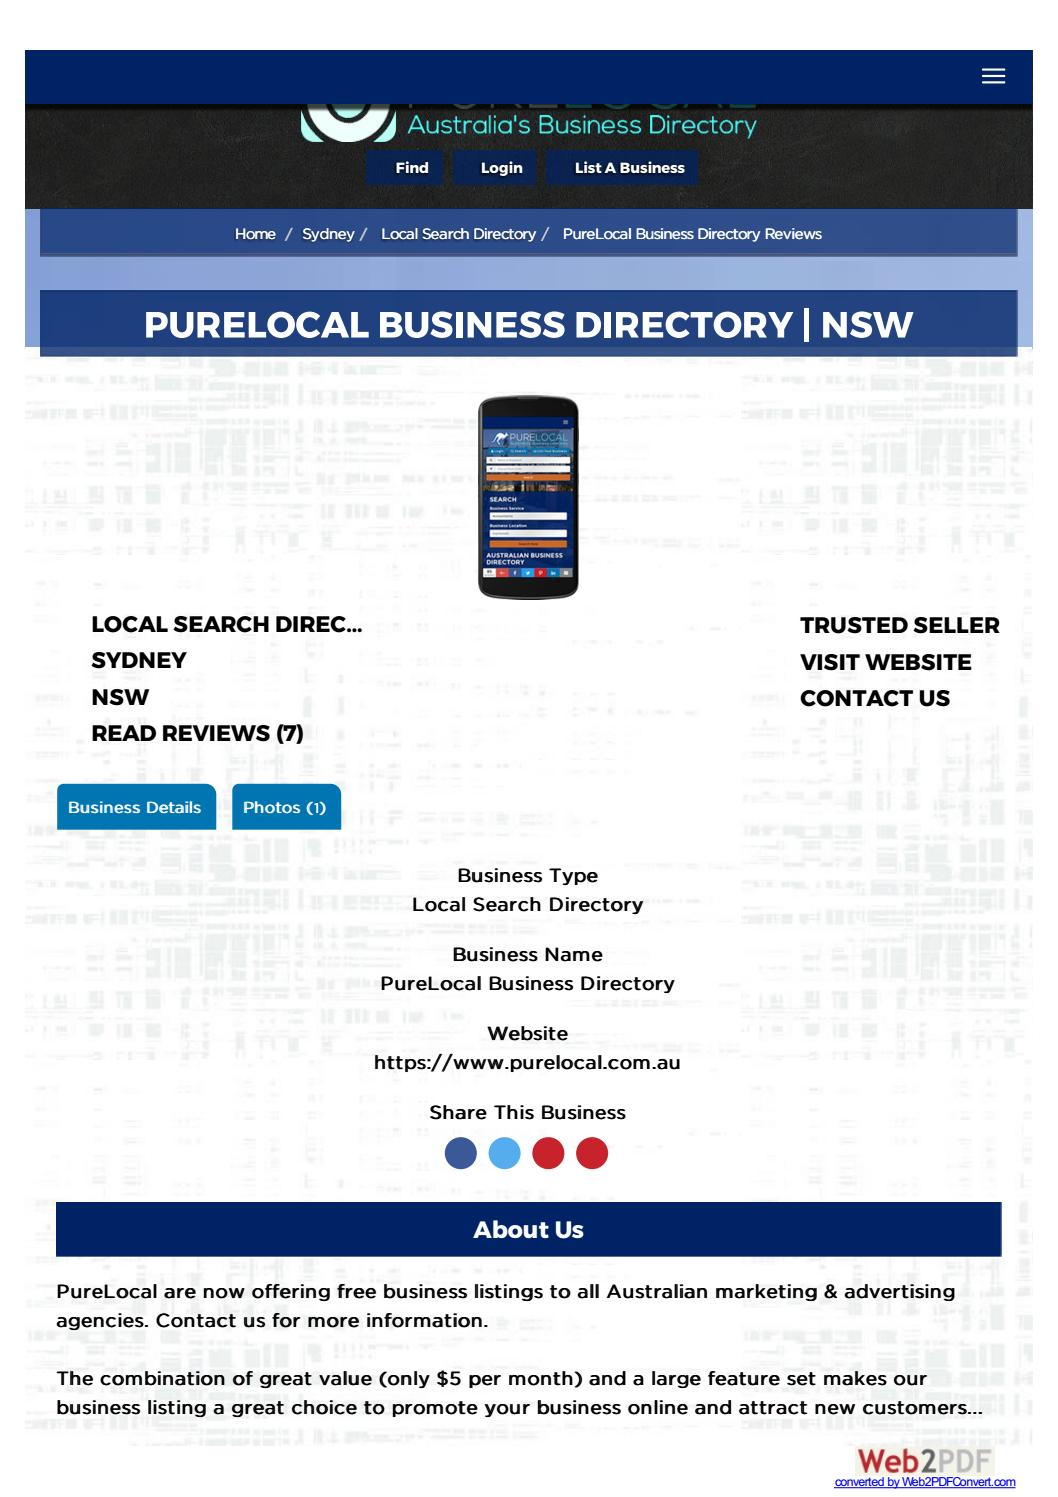 Australia's Business Directory (PureLocal) by Paul Williams